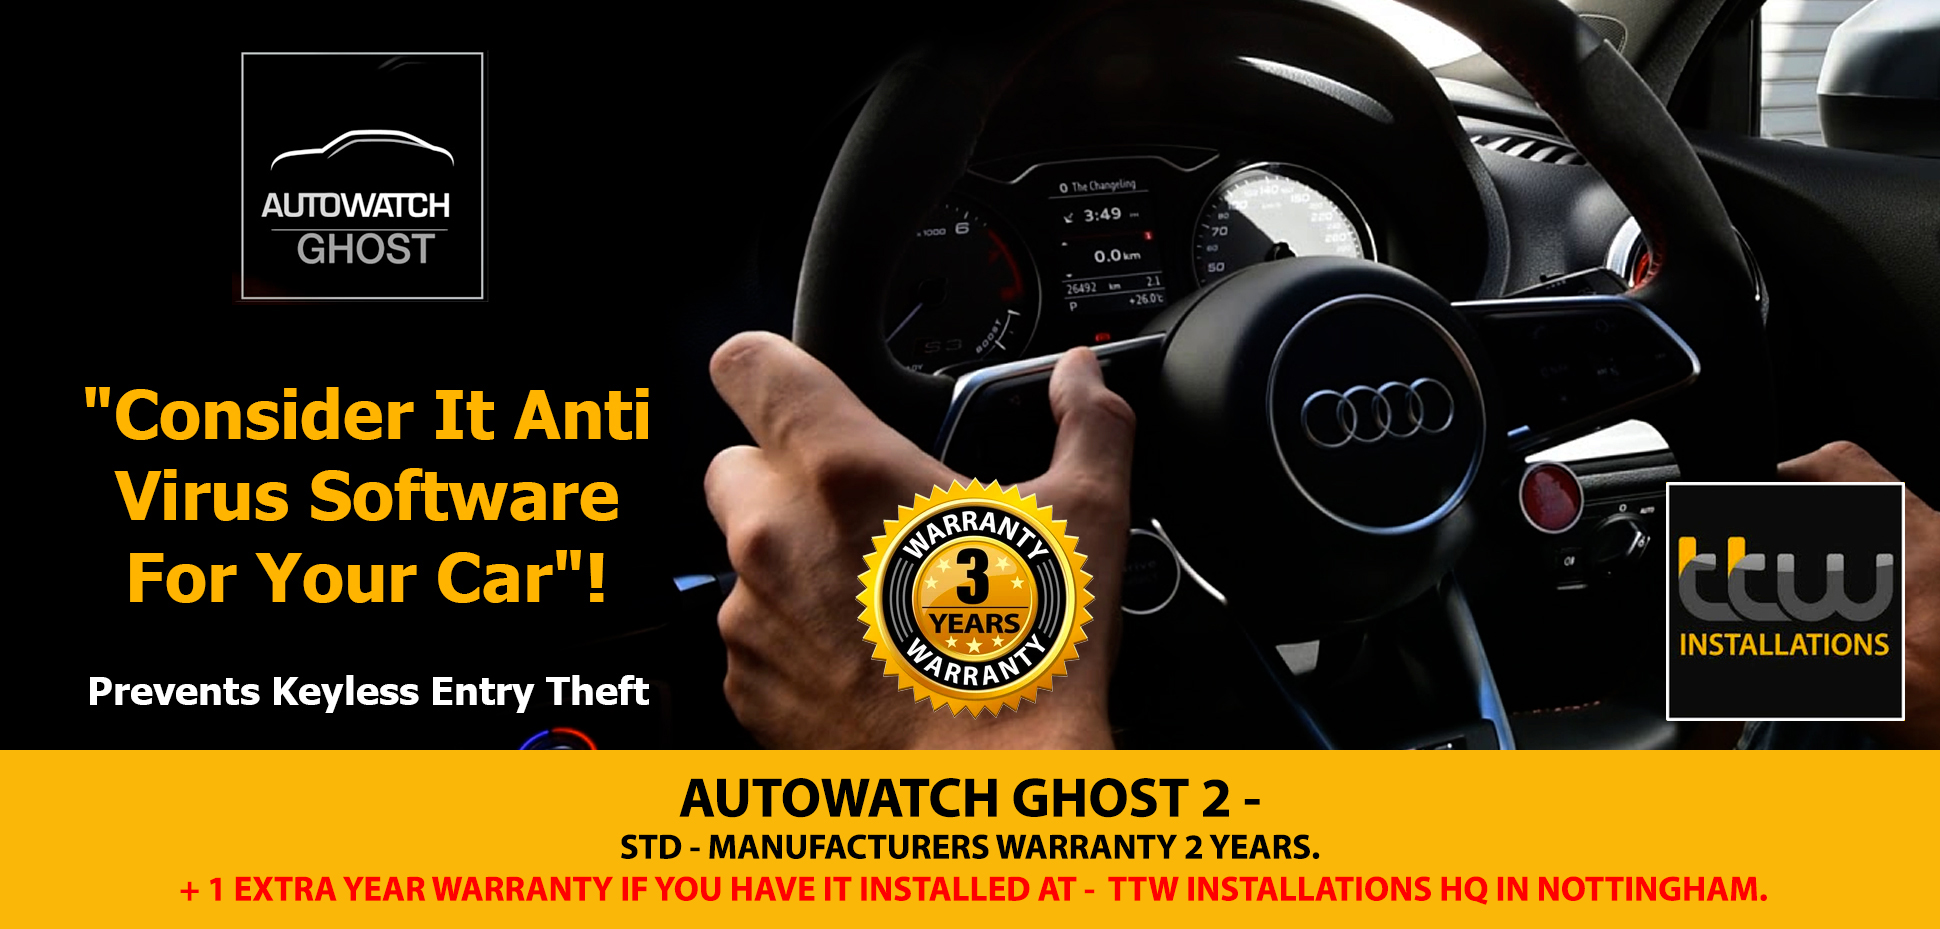 Autowatch Ghost 2 - 3 Year Warranty Only From TTW Installations